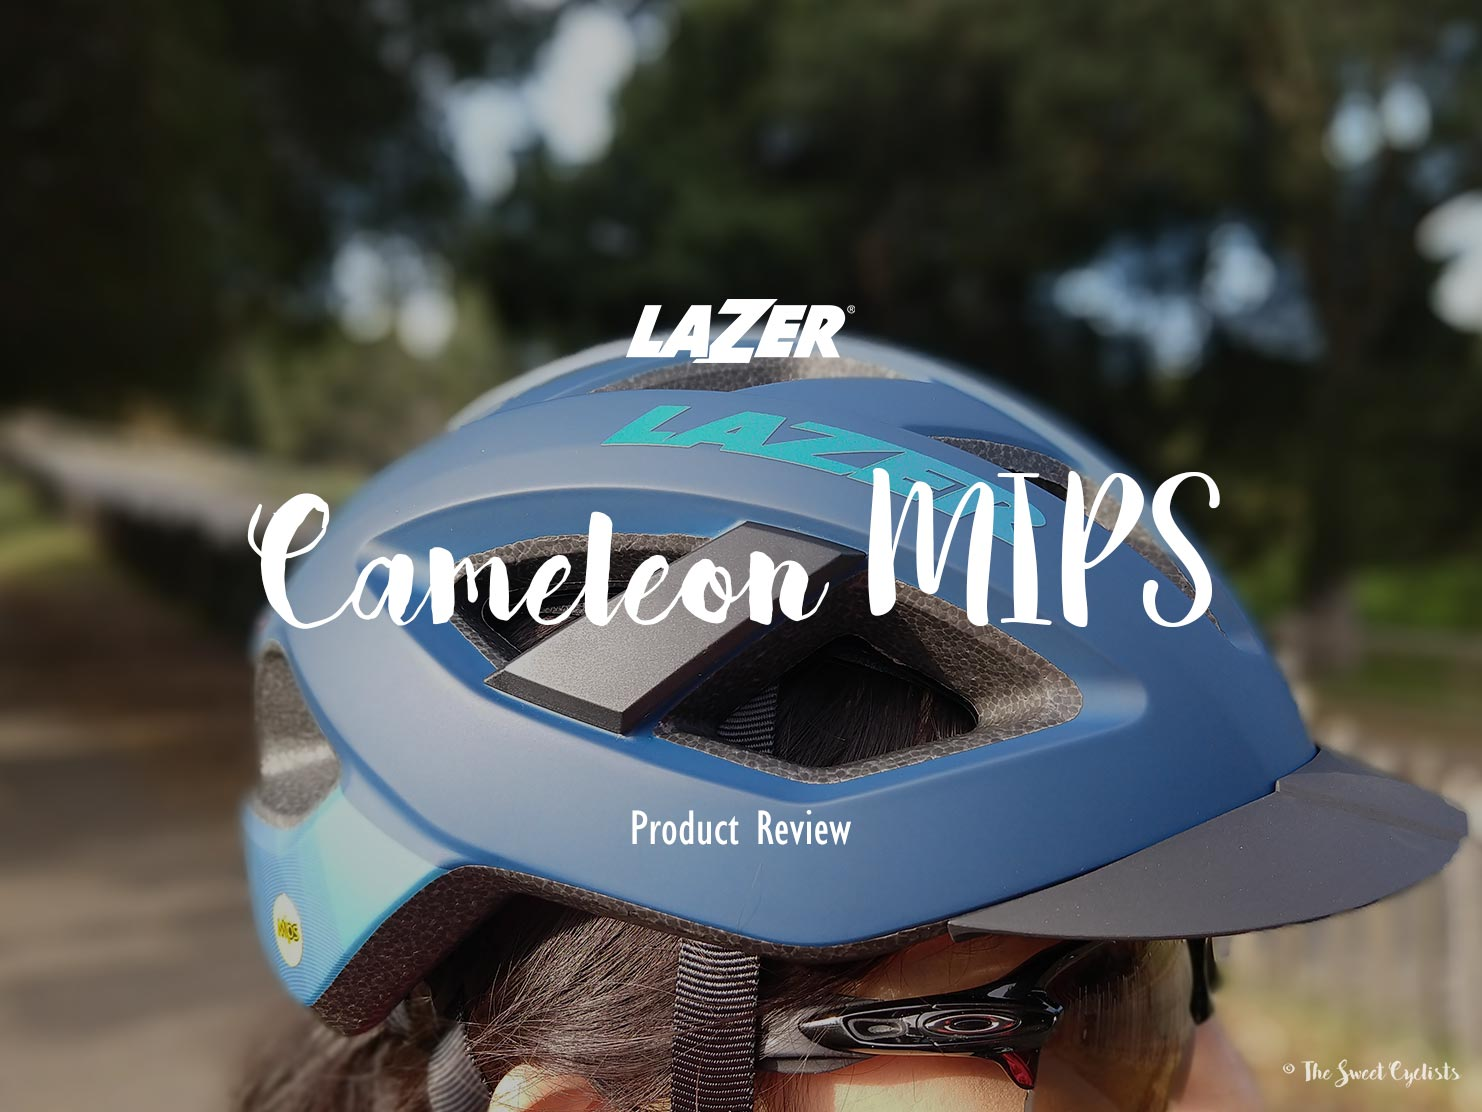 First Look at the Lazer Cameleon MIPS helmet